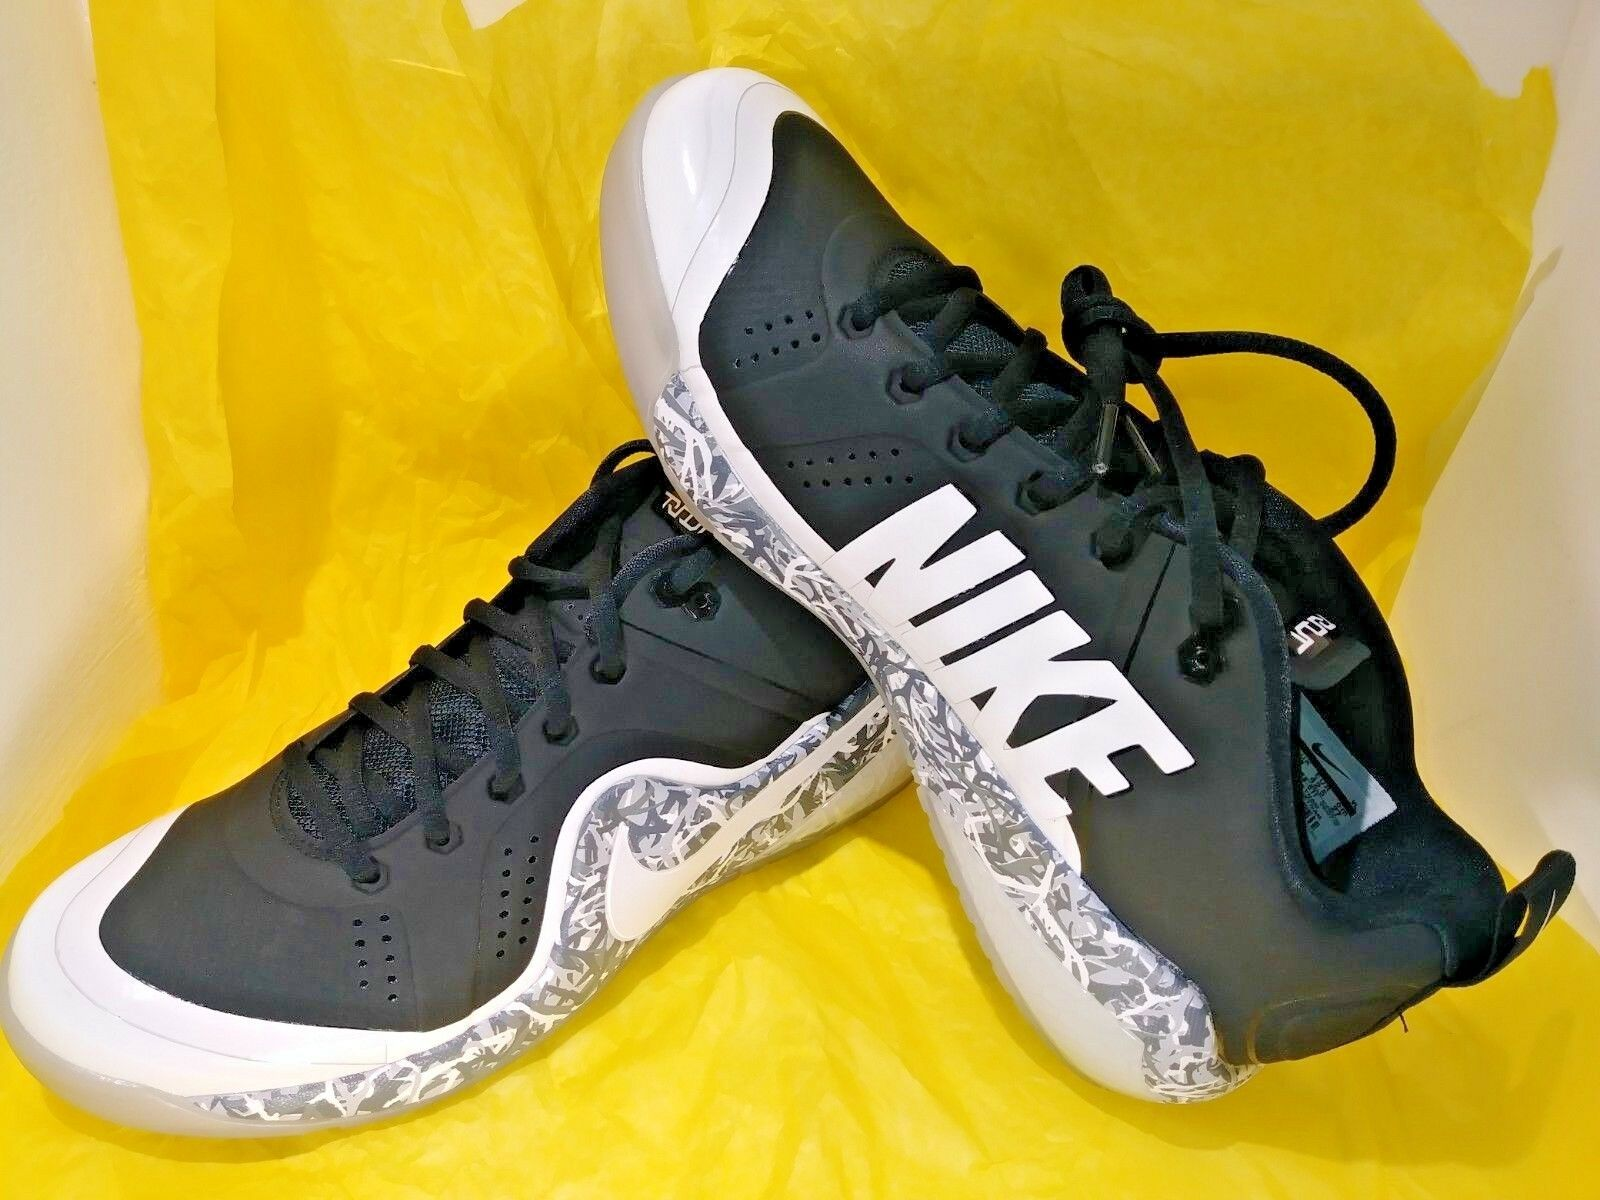 Nike MEN'S FORCE ZOOM Trout 4 Turf TRAINING shoes SIZE 10  NEW  917838-001